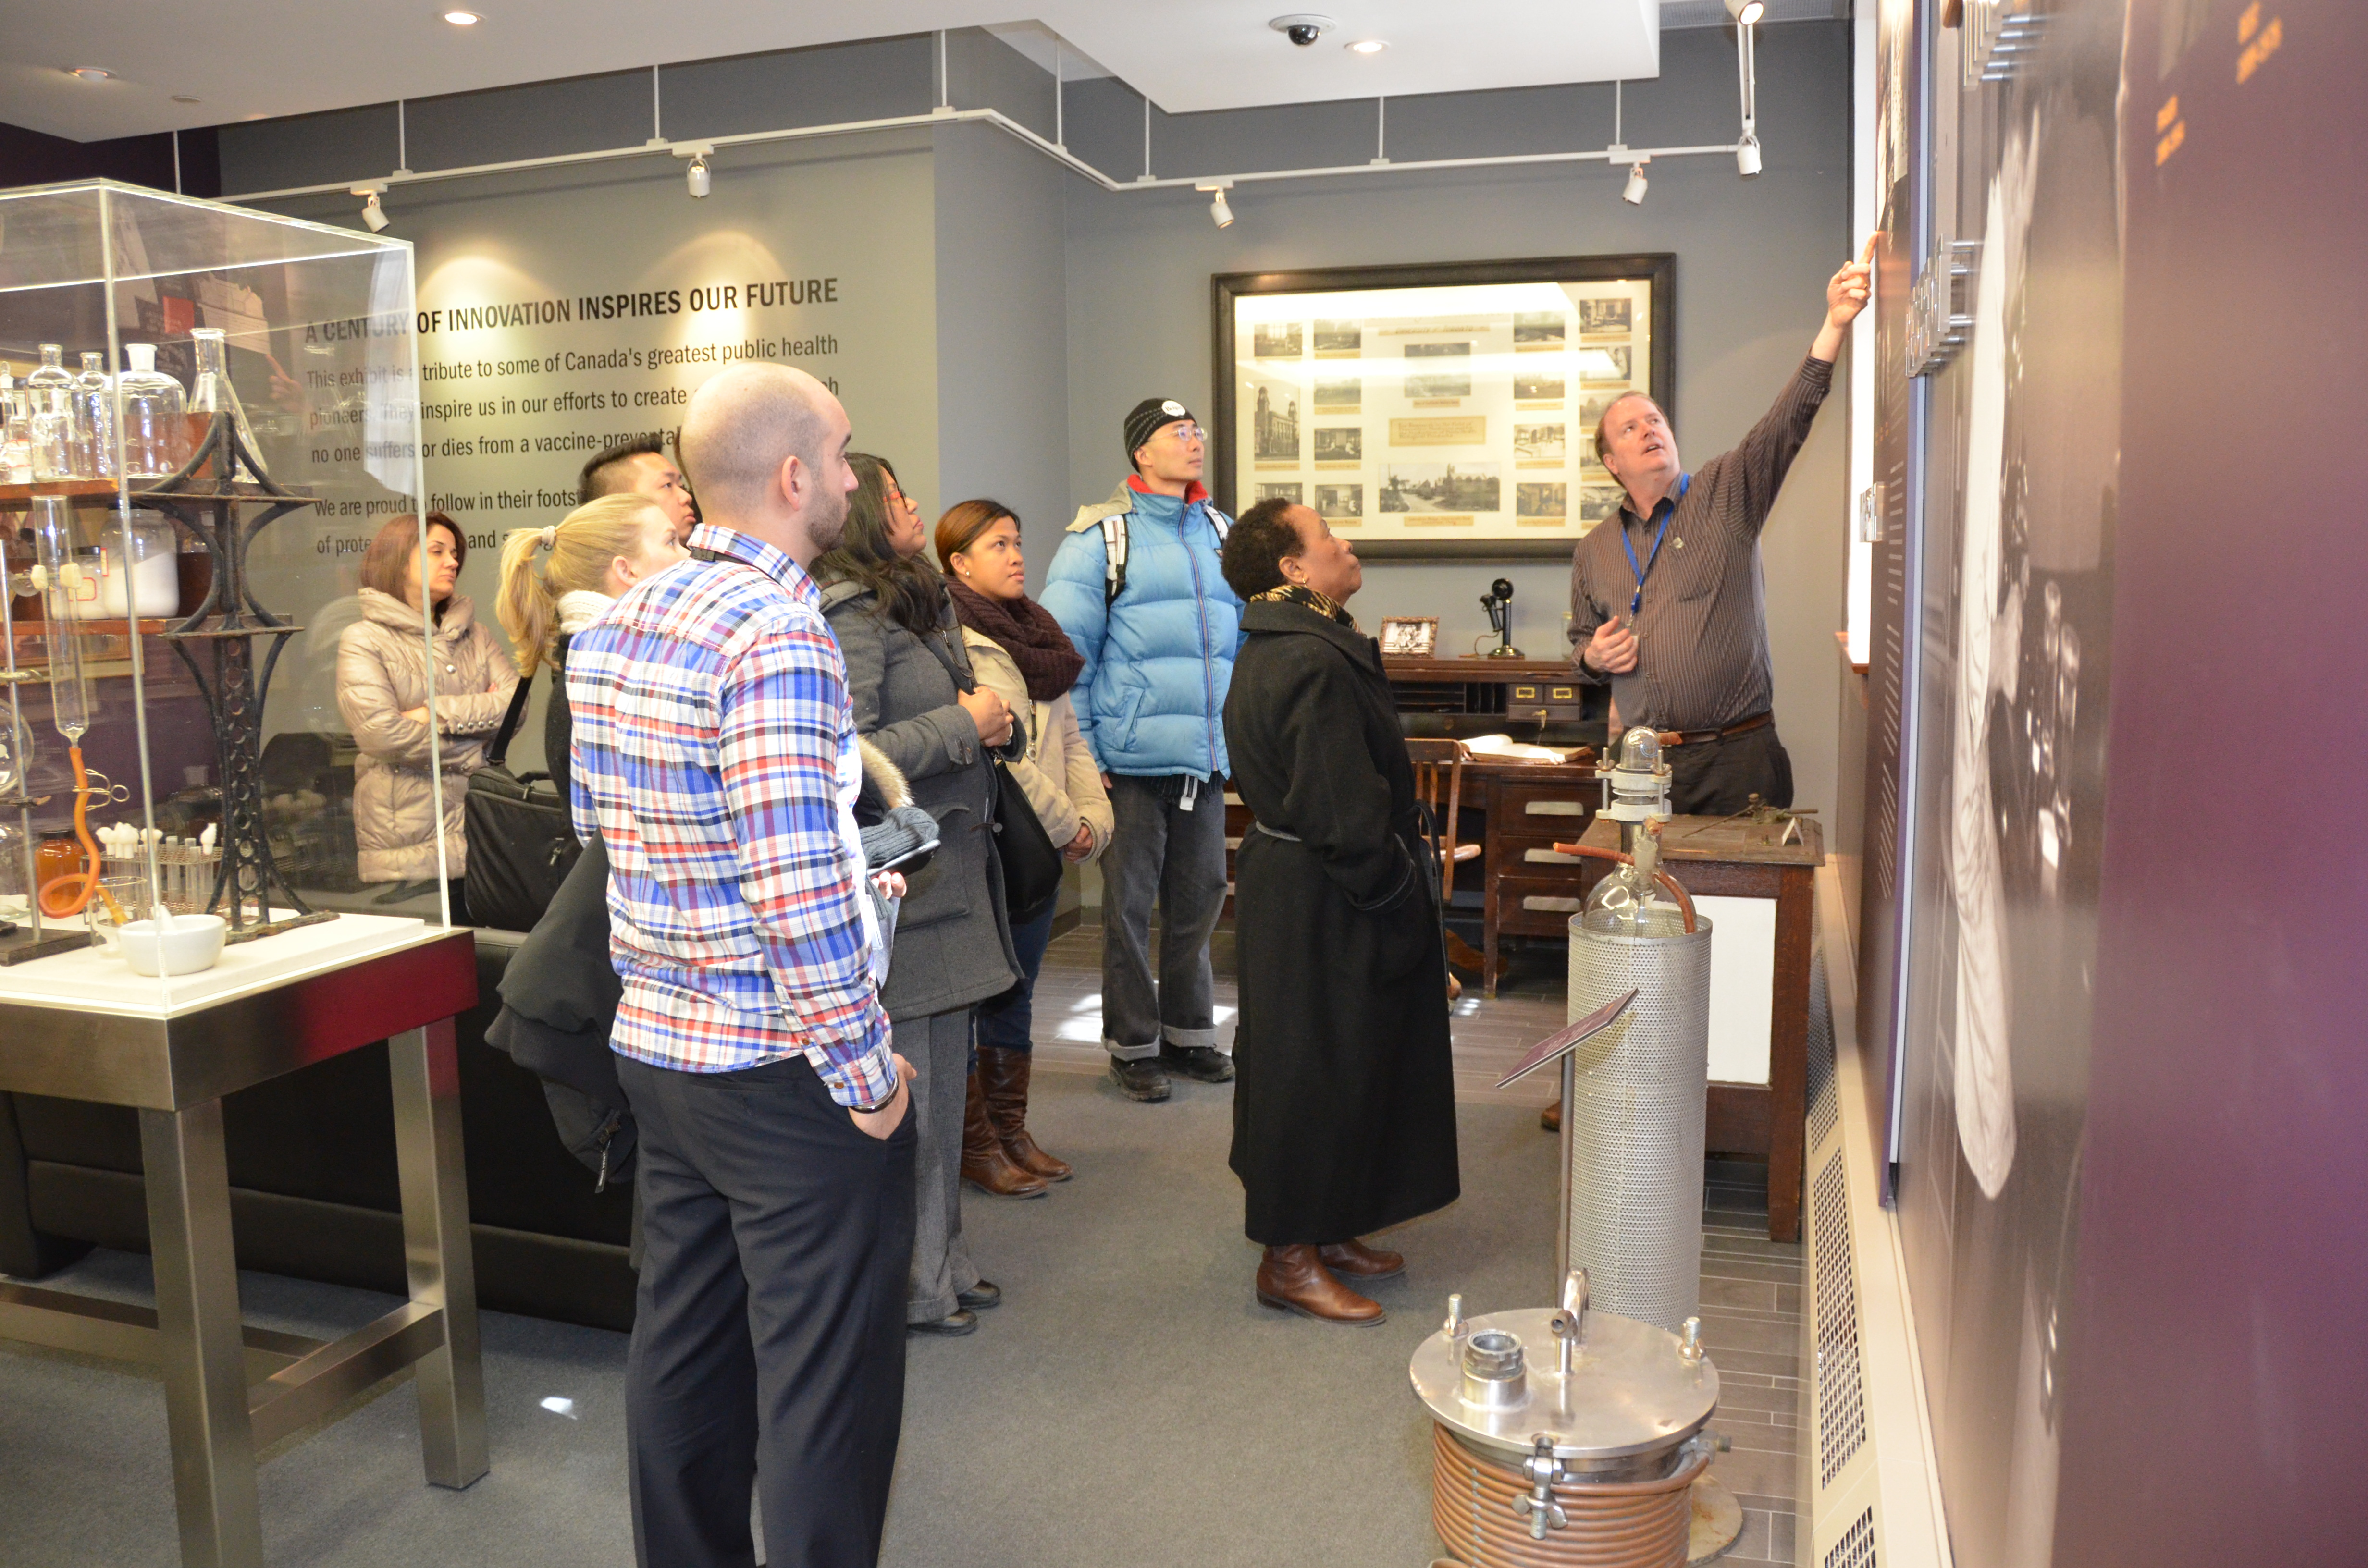 Christopher Rutty leading a group of new employees through one of his regular tours of Sanofi Pasteur Canada's Heritage Room at the Connaught Campus.